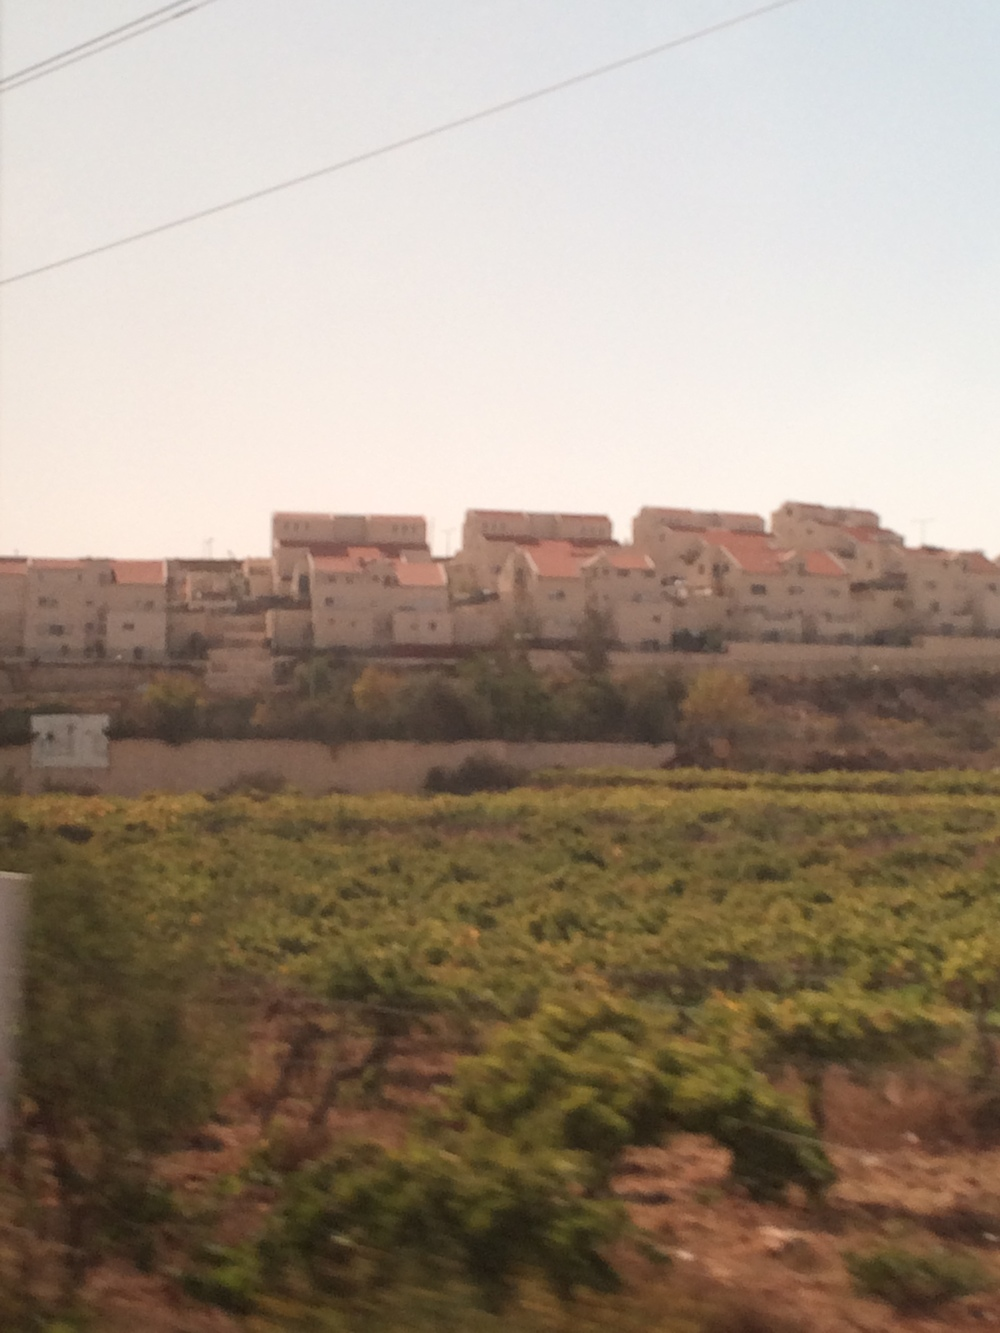 A hilltop settlement. Sorry for the blur-I took this picture from a moving car.